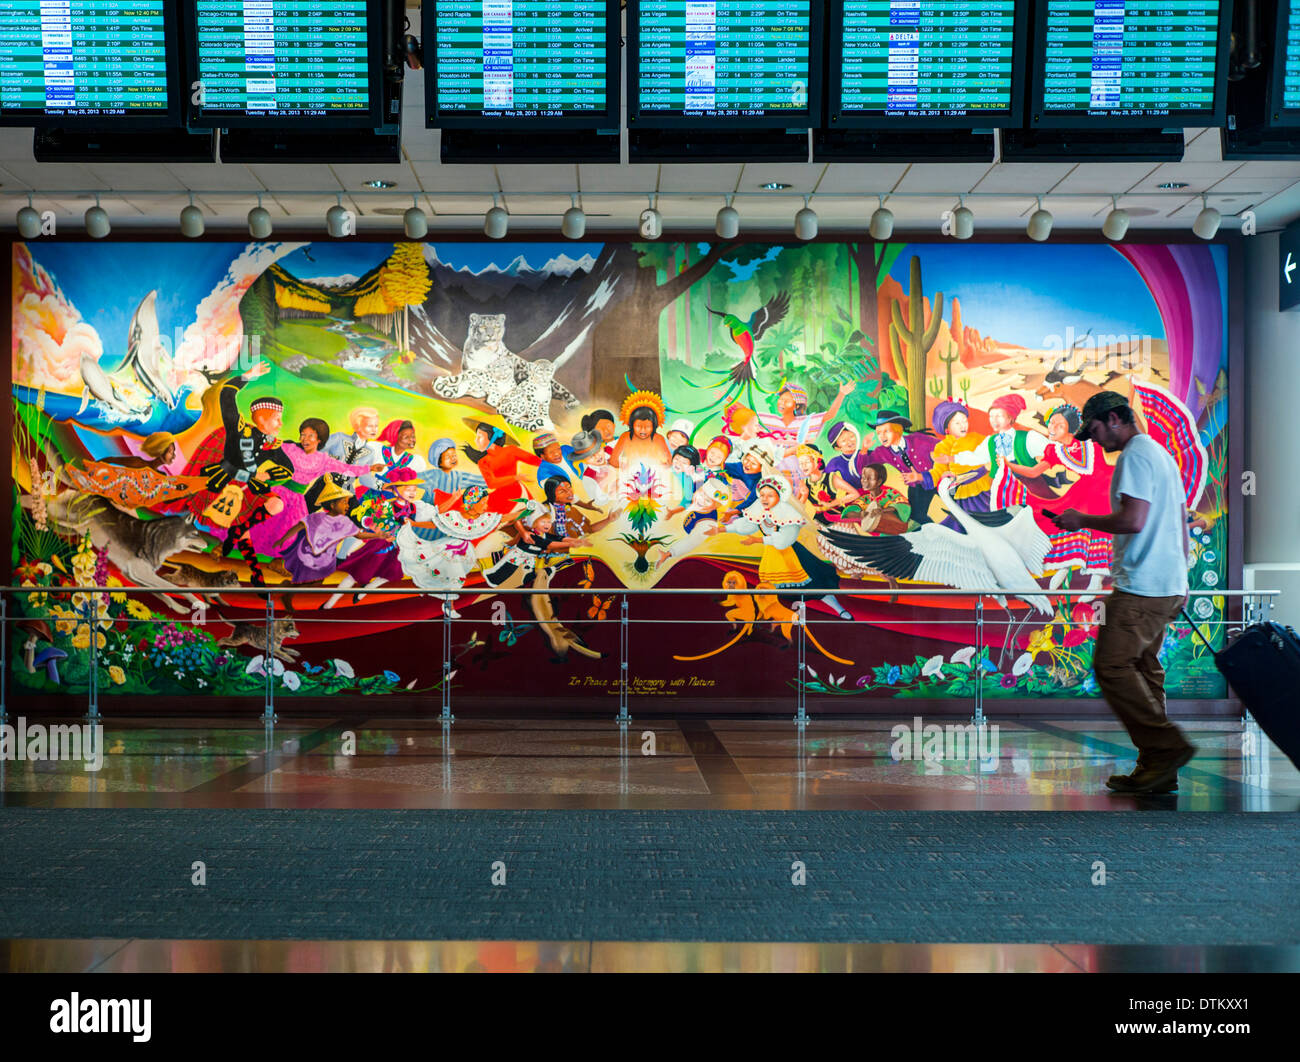 Denver Airport Art Stock Photos Amp Denver Airport Art Stock